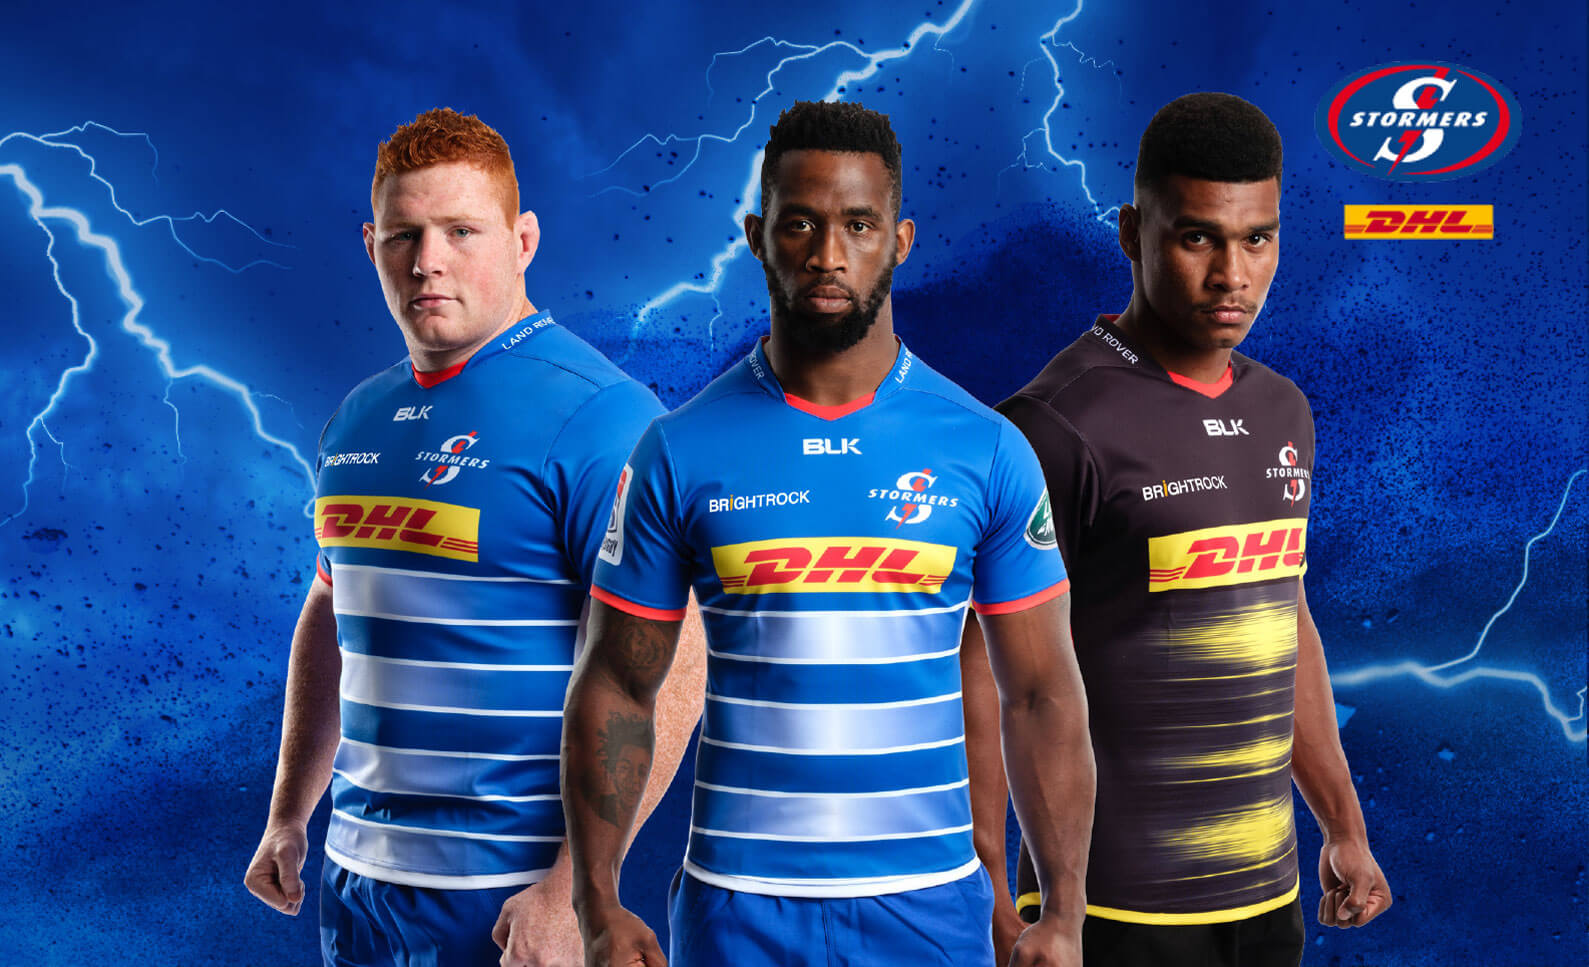 The Stormers | Play the Vodacom Super Rugby Predictor game